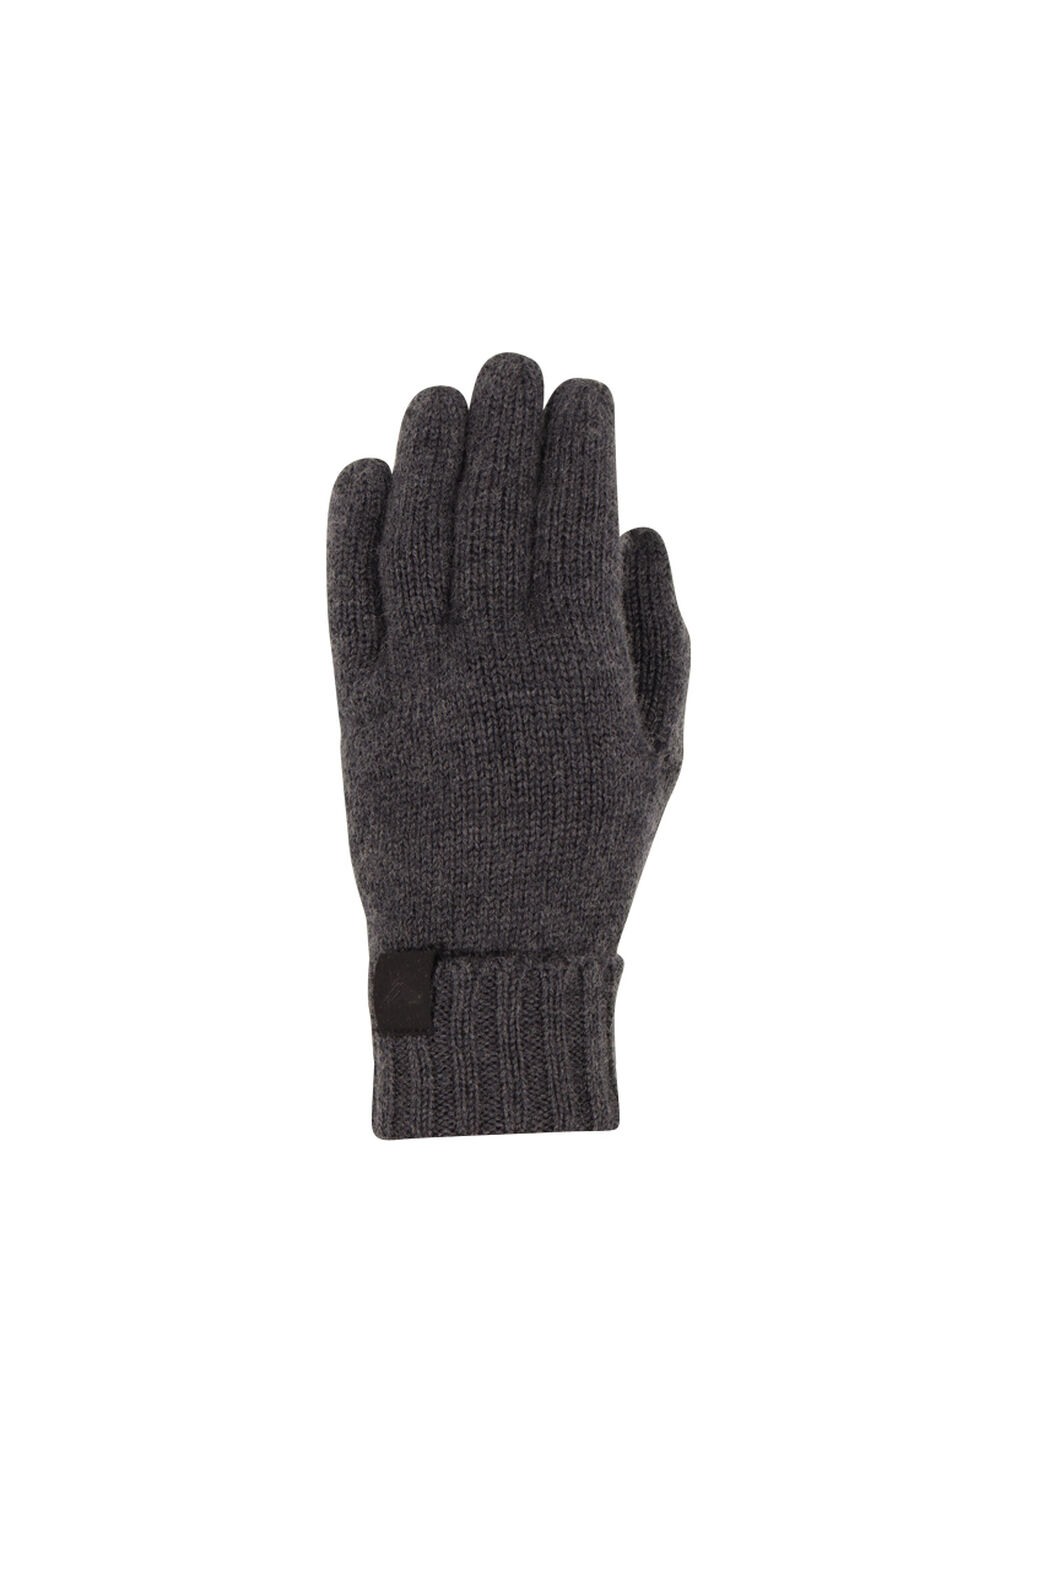 Macpac Merino Knit Gloves V2, Charcoal Melange, hi-res